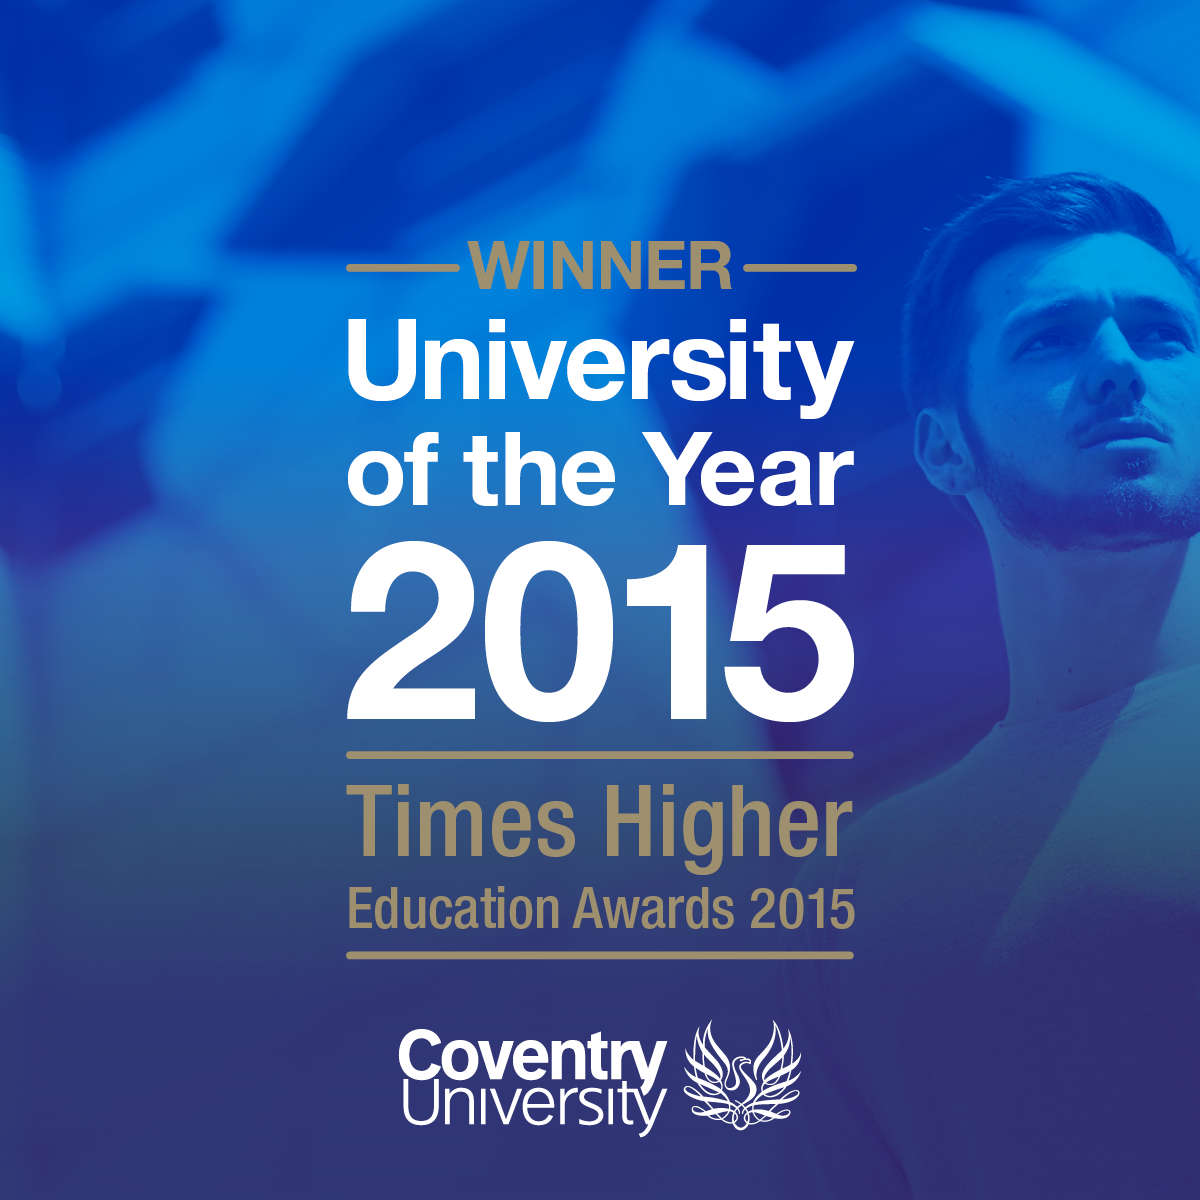 We're over the moon! We are @timeshighered's University of the Year! #THEawards: https://t.co/WIWZiwGBR0 https://t.co/S7Y5RRLxkt